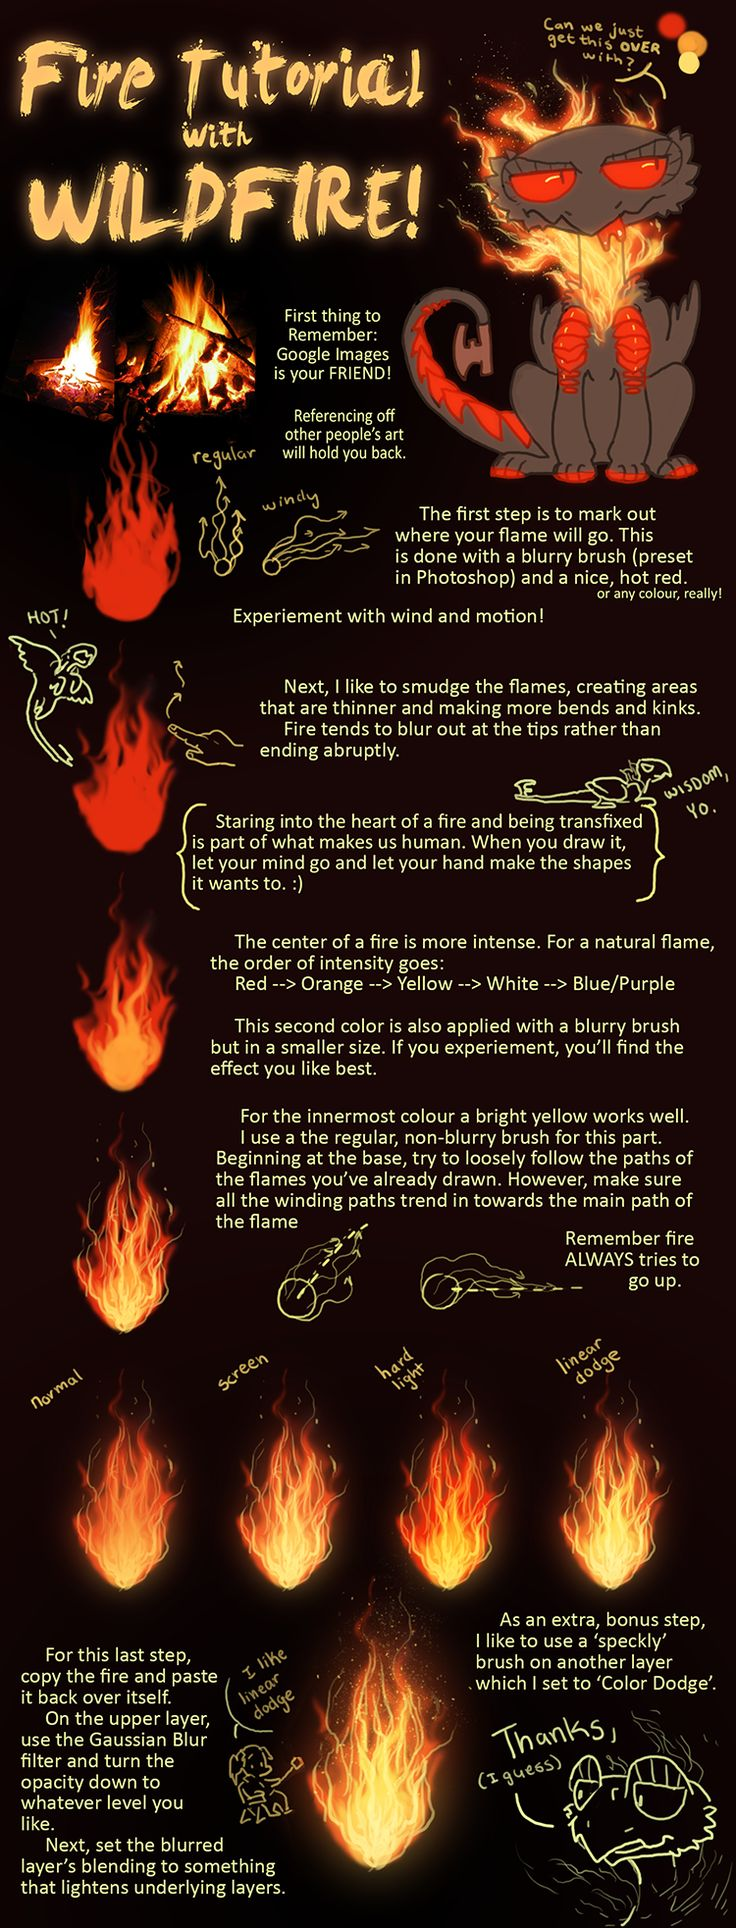 Fire Tutorial with Wildfire by FlightyFelon painting resource tool how to tutorial instructions | Create your own roleplaying game material w/ RPG Bard: www.rpgbard.com | Writing inspiration for Dungeons and Dragons DND D&D Pathfinder PFRPG Warhammer 40k Star Wars Shadowrun Call of Cthulhu Lord of the Rings LoTR + d20 fantasy science fiction scifi horror design | Not our art: click artwork for source